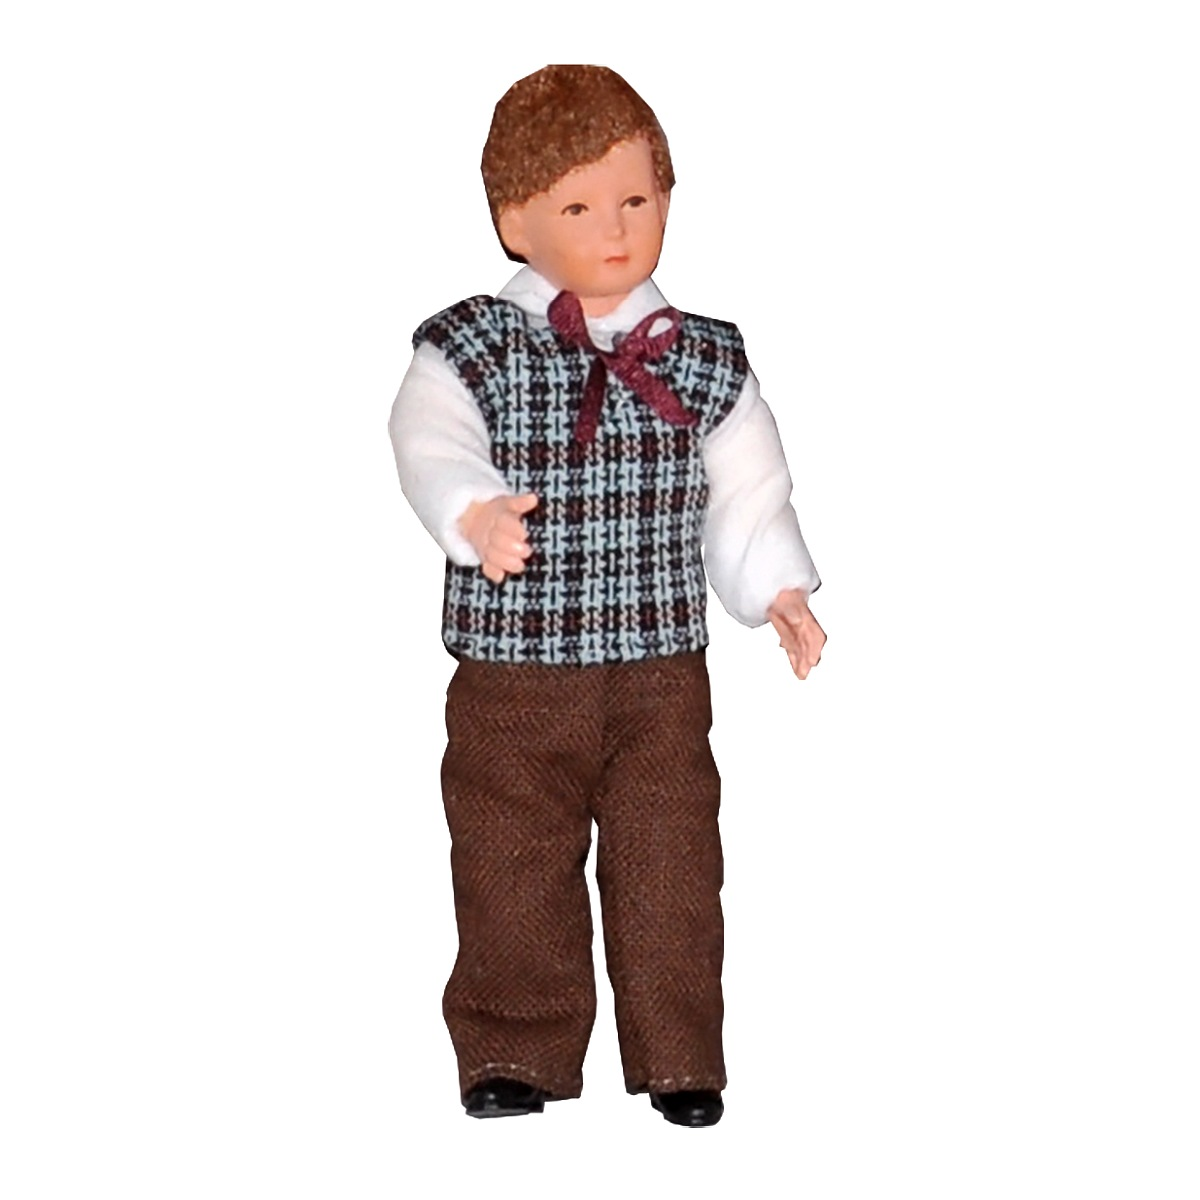 Boy in a chequered pullover